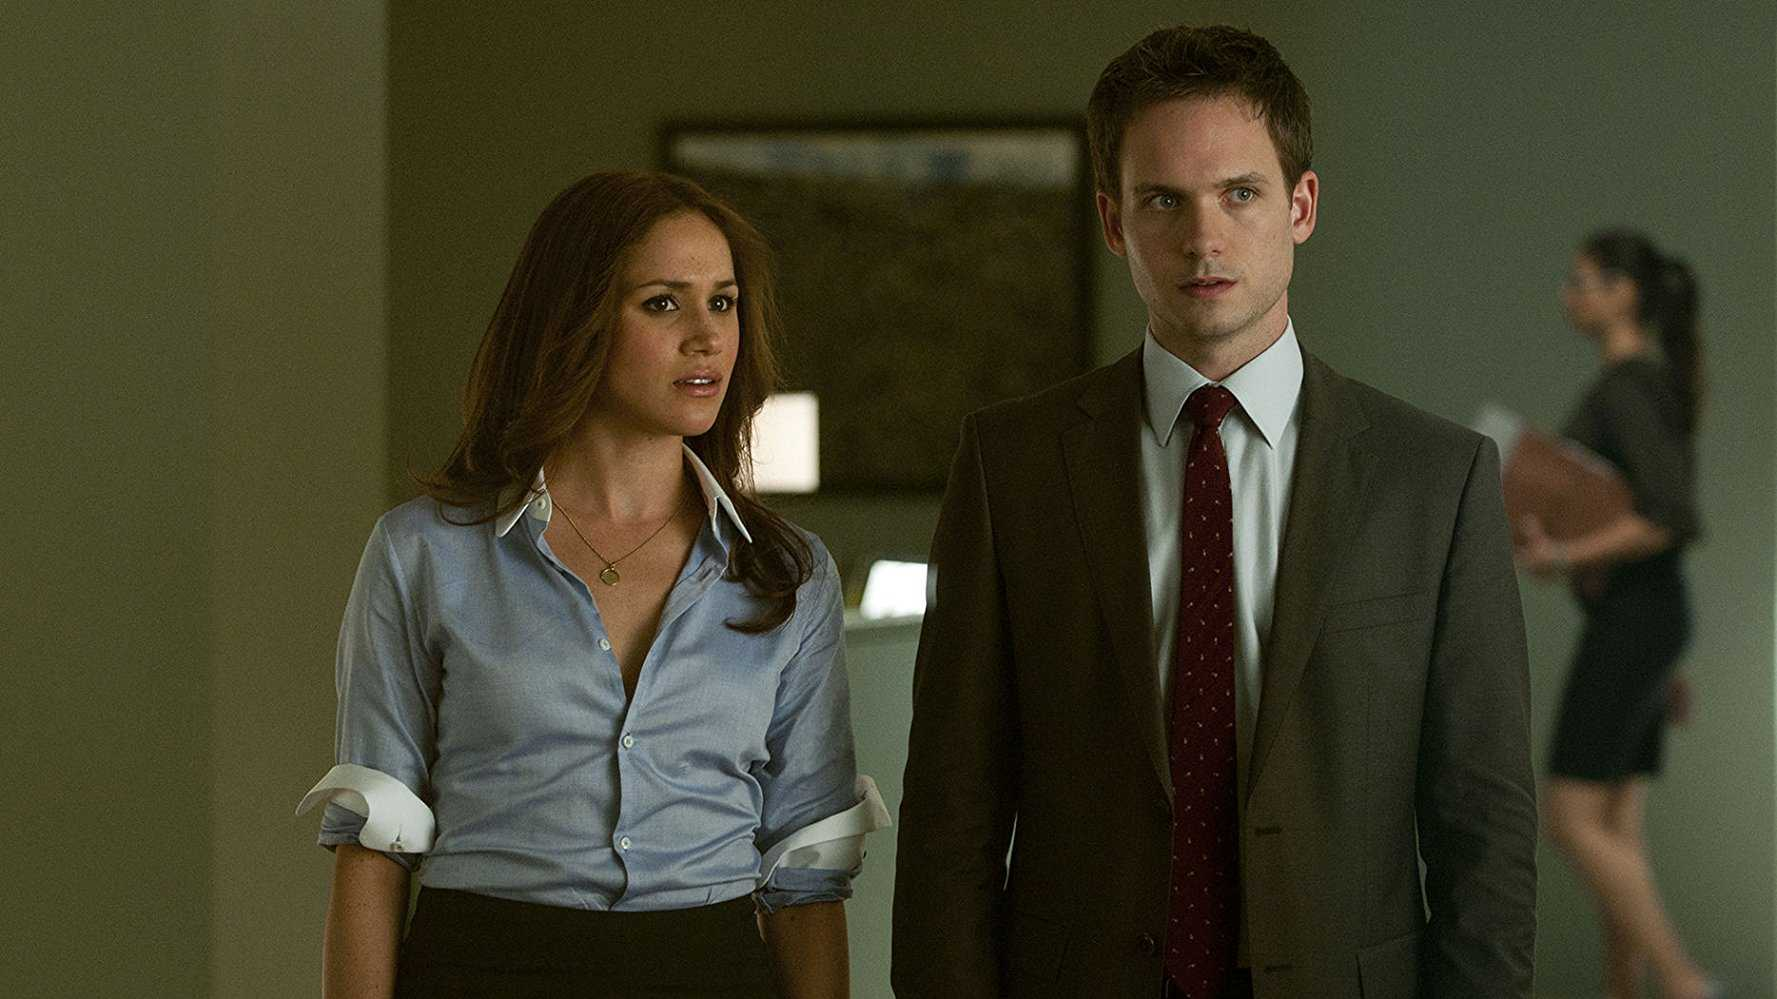 Patrick J Adams Defends Meghan Markle Against A Racist Tweet By A US Republican Candidate | patrick j adams